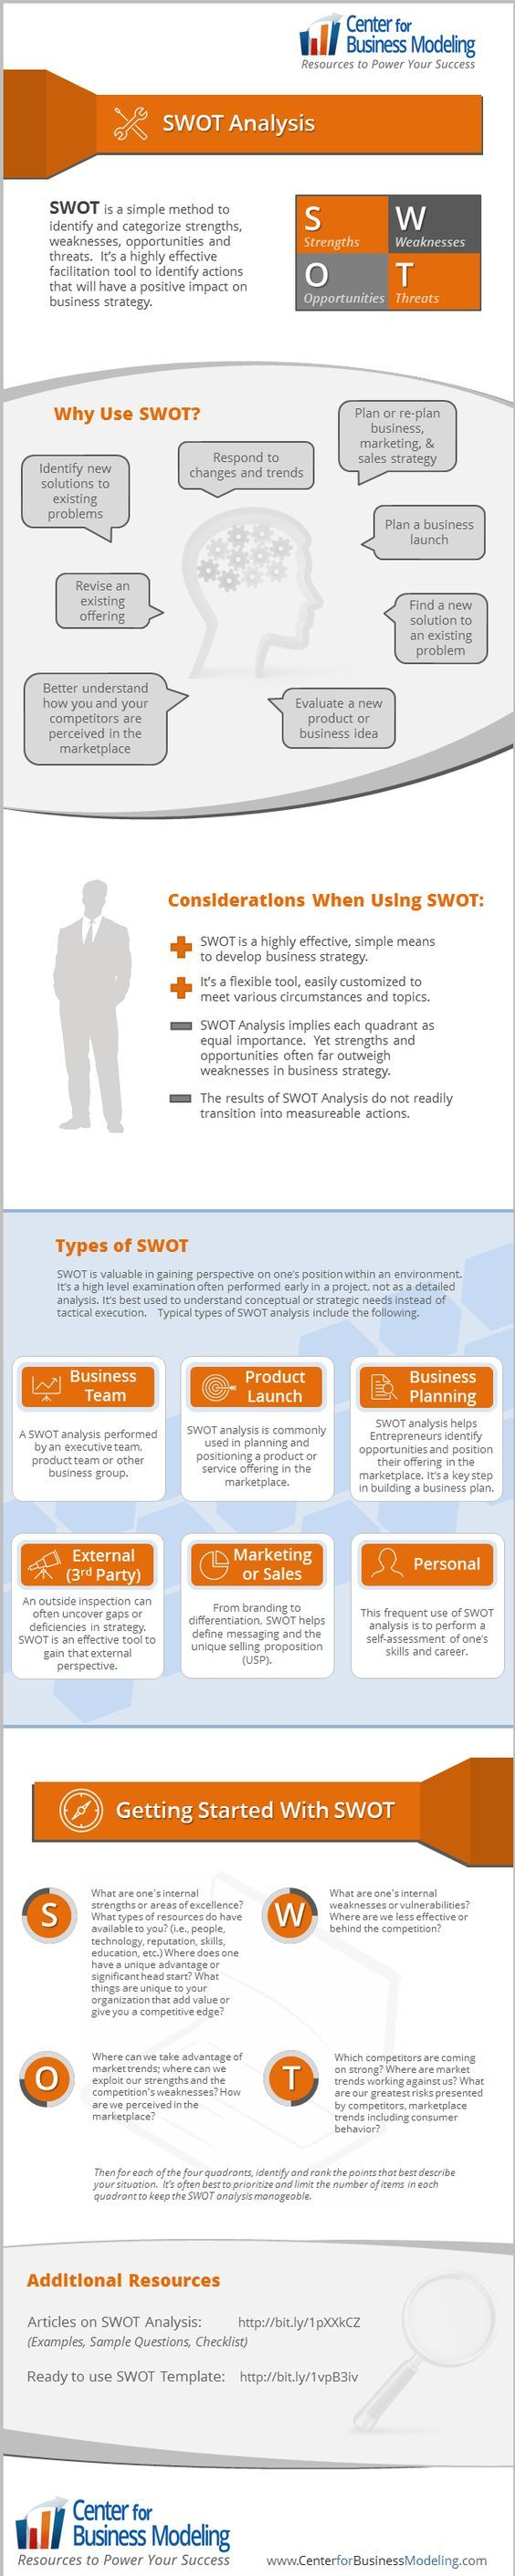 best ideas about swot analysis strategic how to do a swot analysis infographic